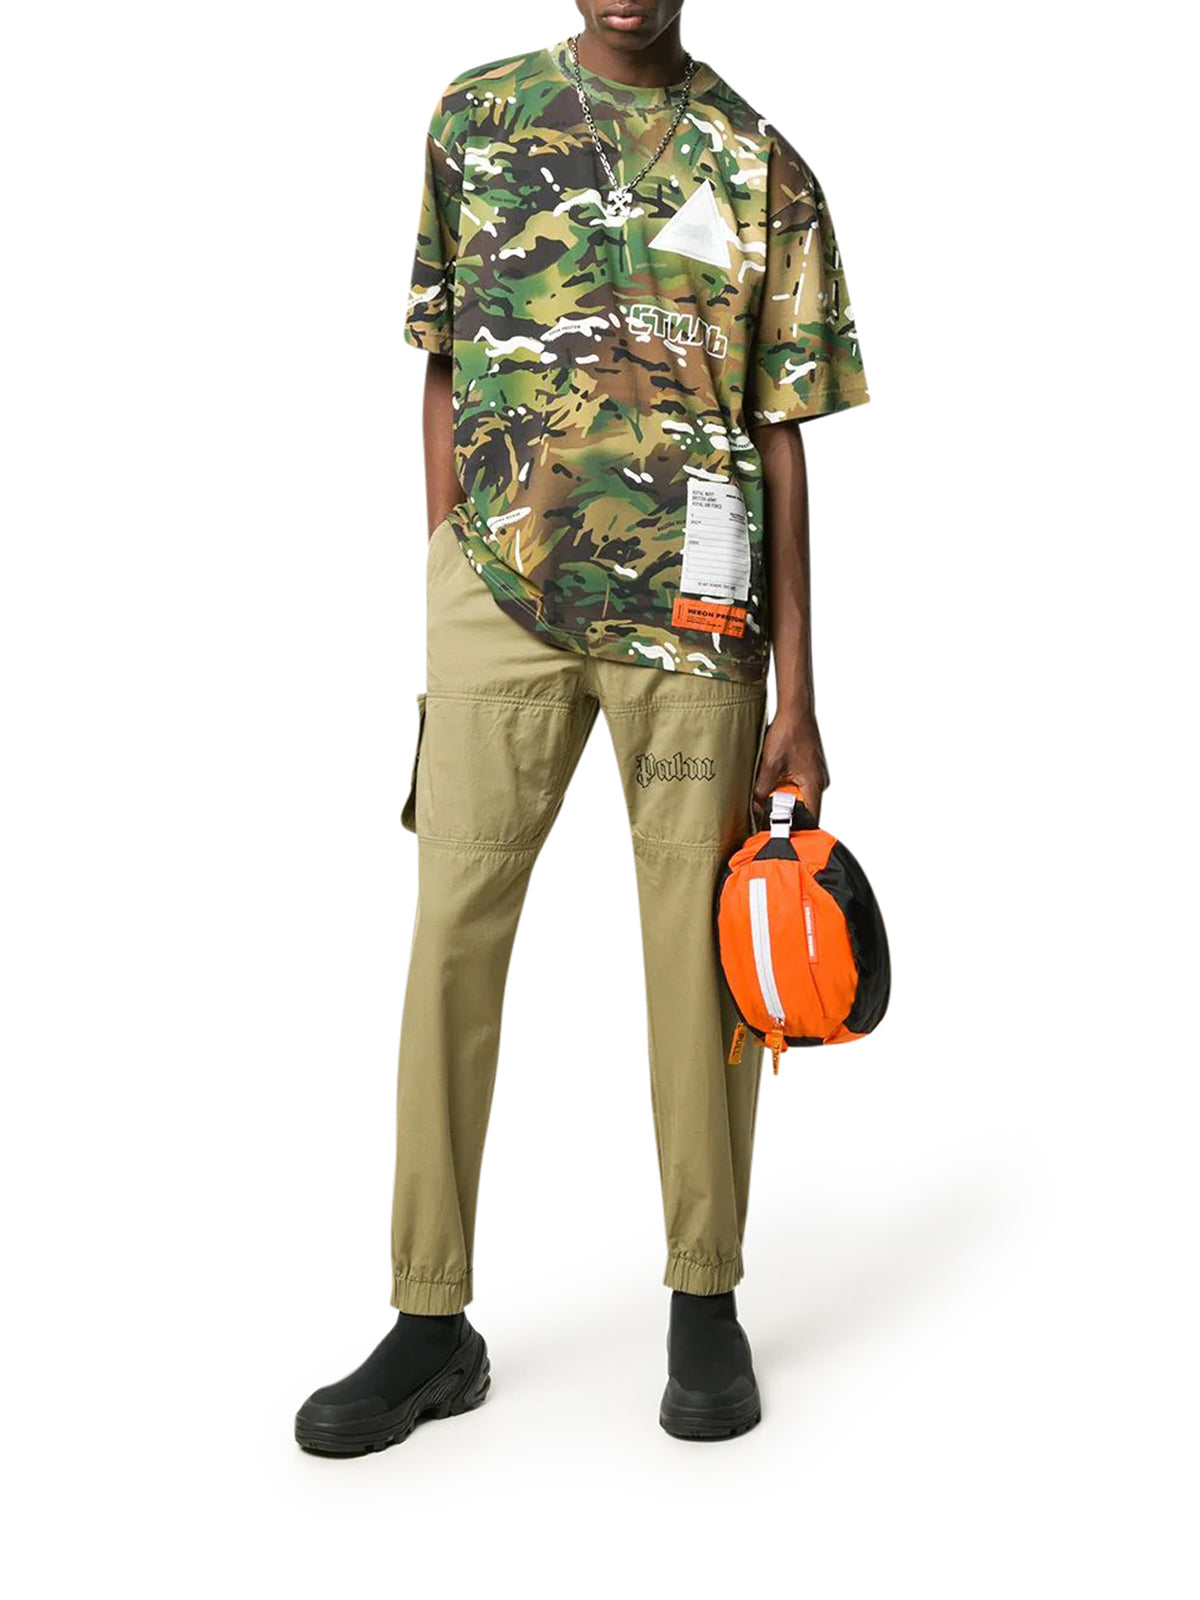 HP X MINISTRY OF DEFENCE Camouflage T-shirt